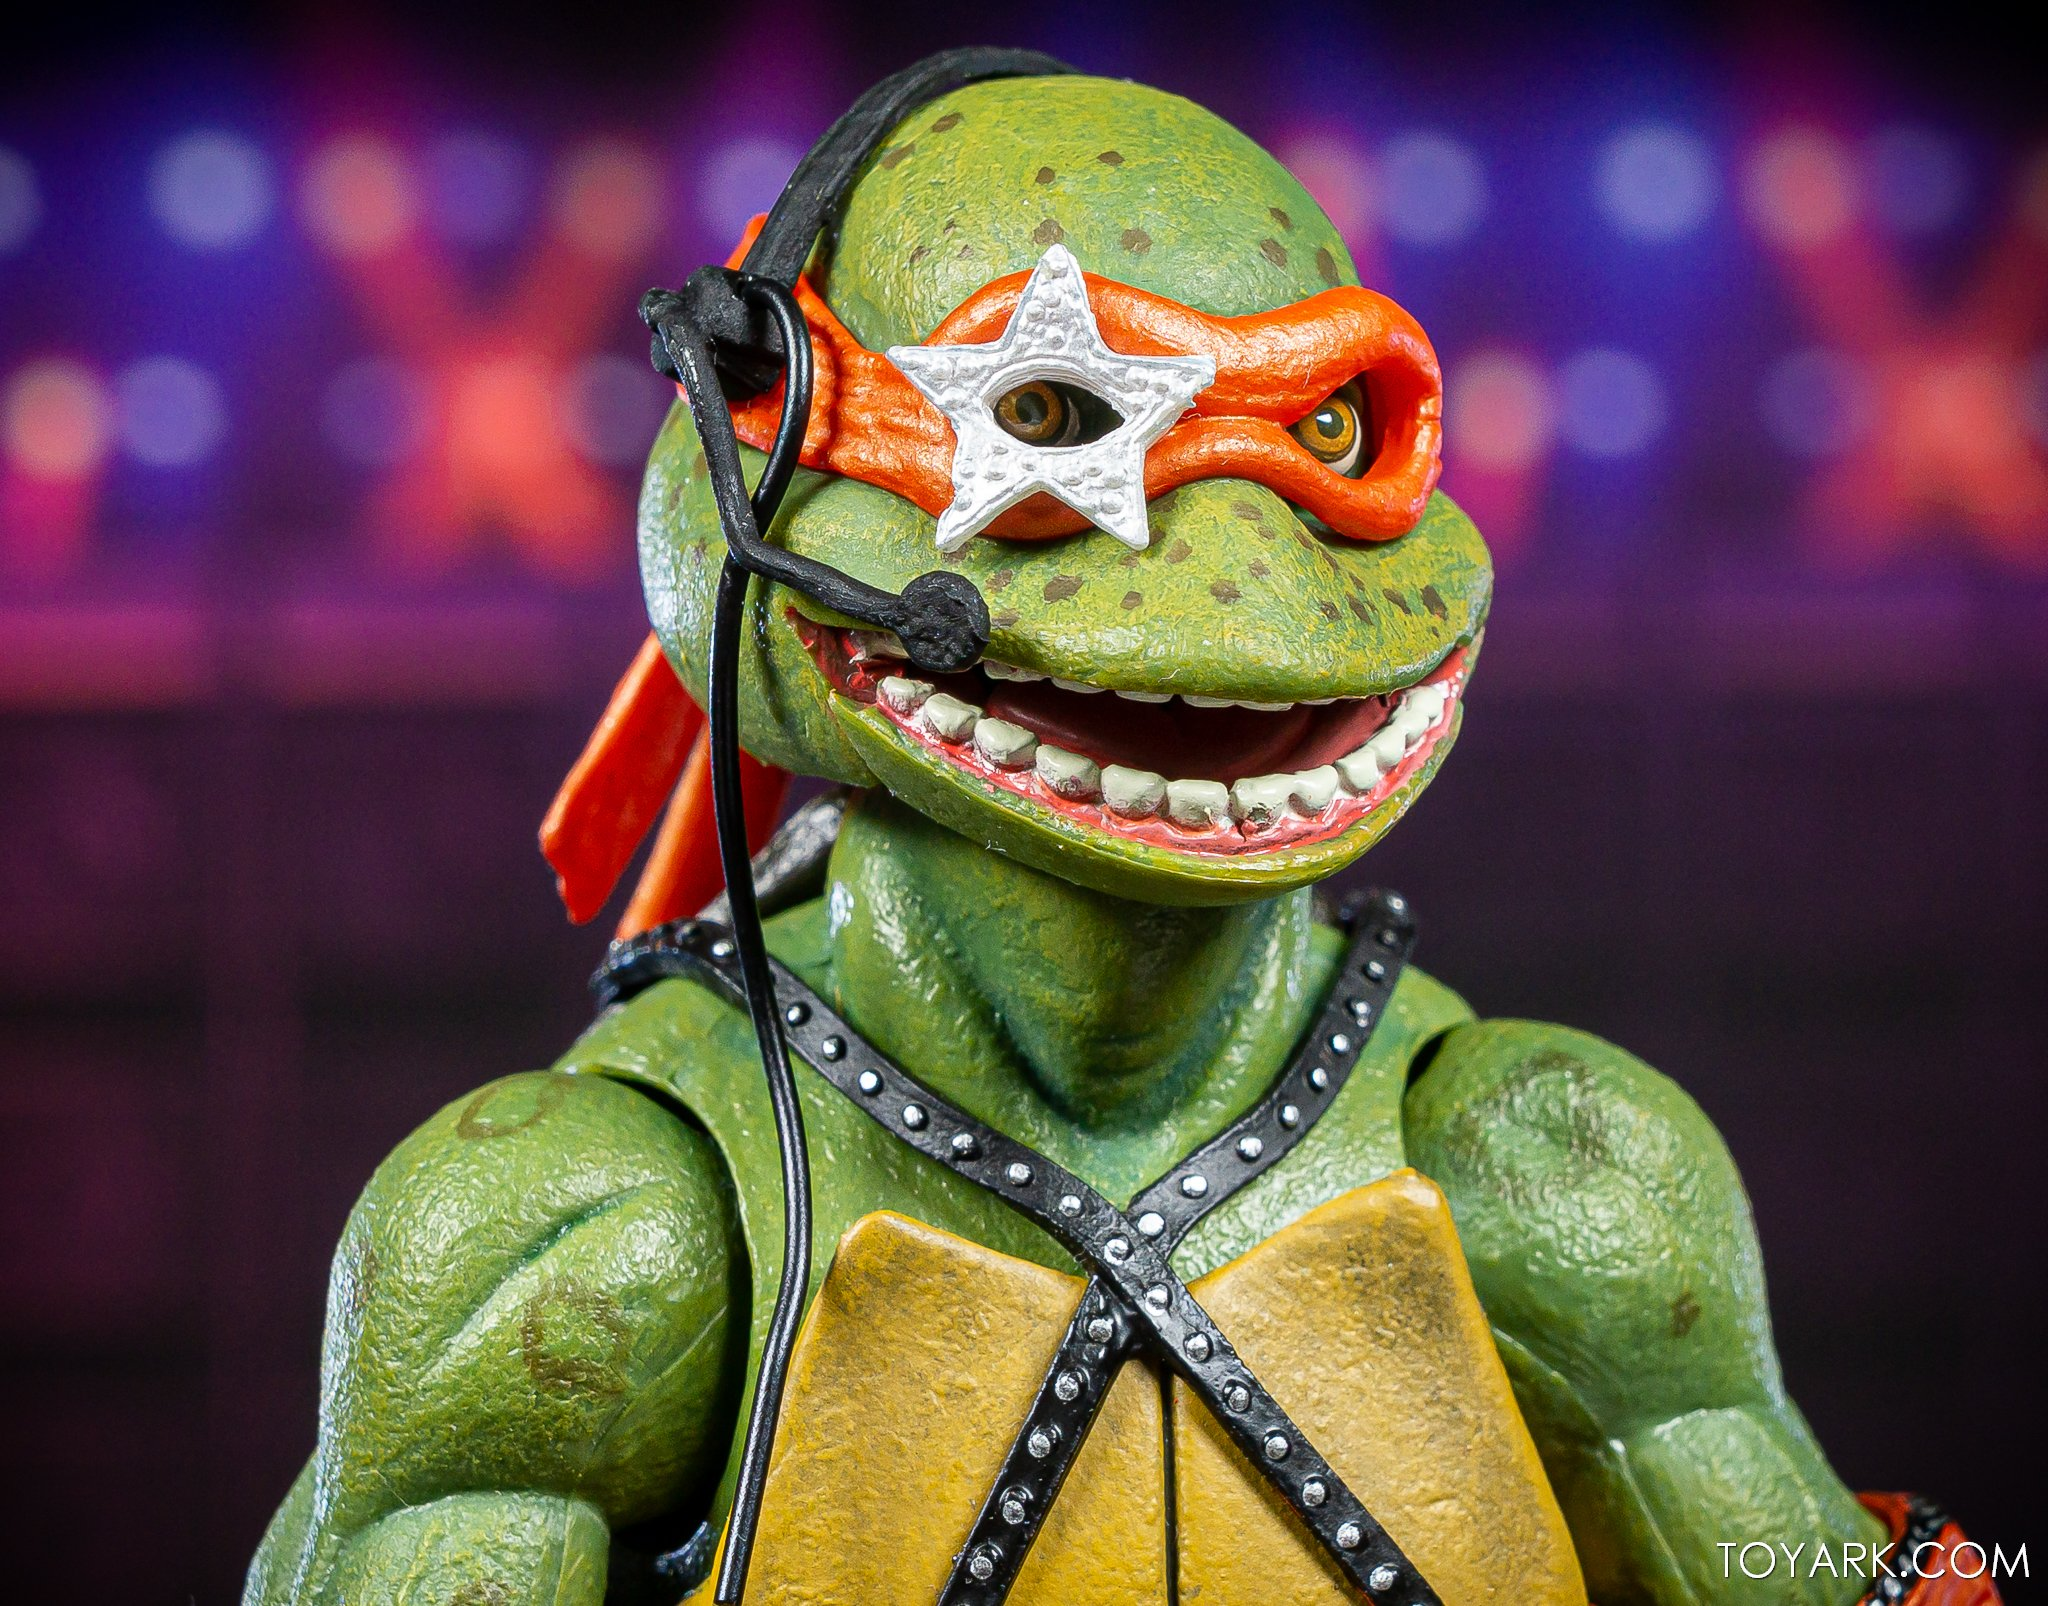 https://news.toyark.com/wp-content/uploads/sites/4/2020/07/SDCC-2020-TMNT-Musical-Mutagen-Tour-025.jpg